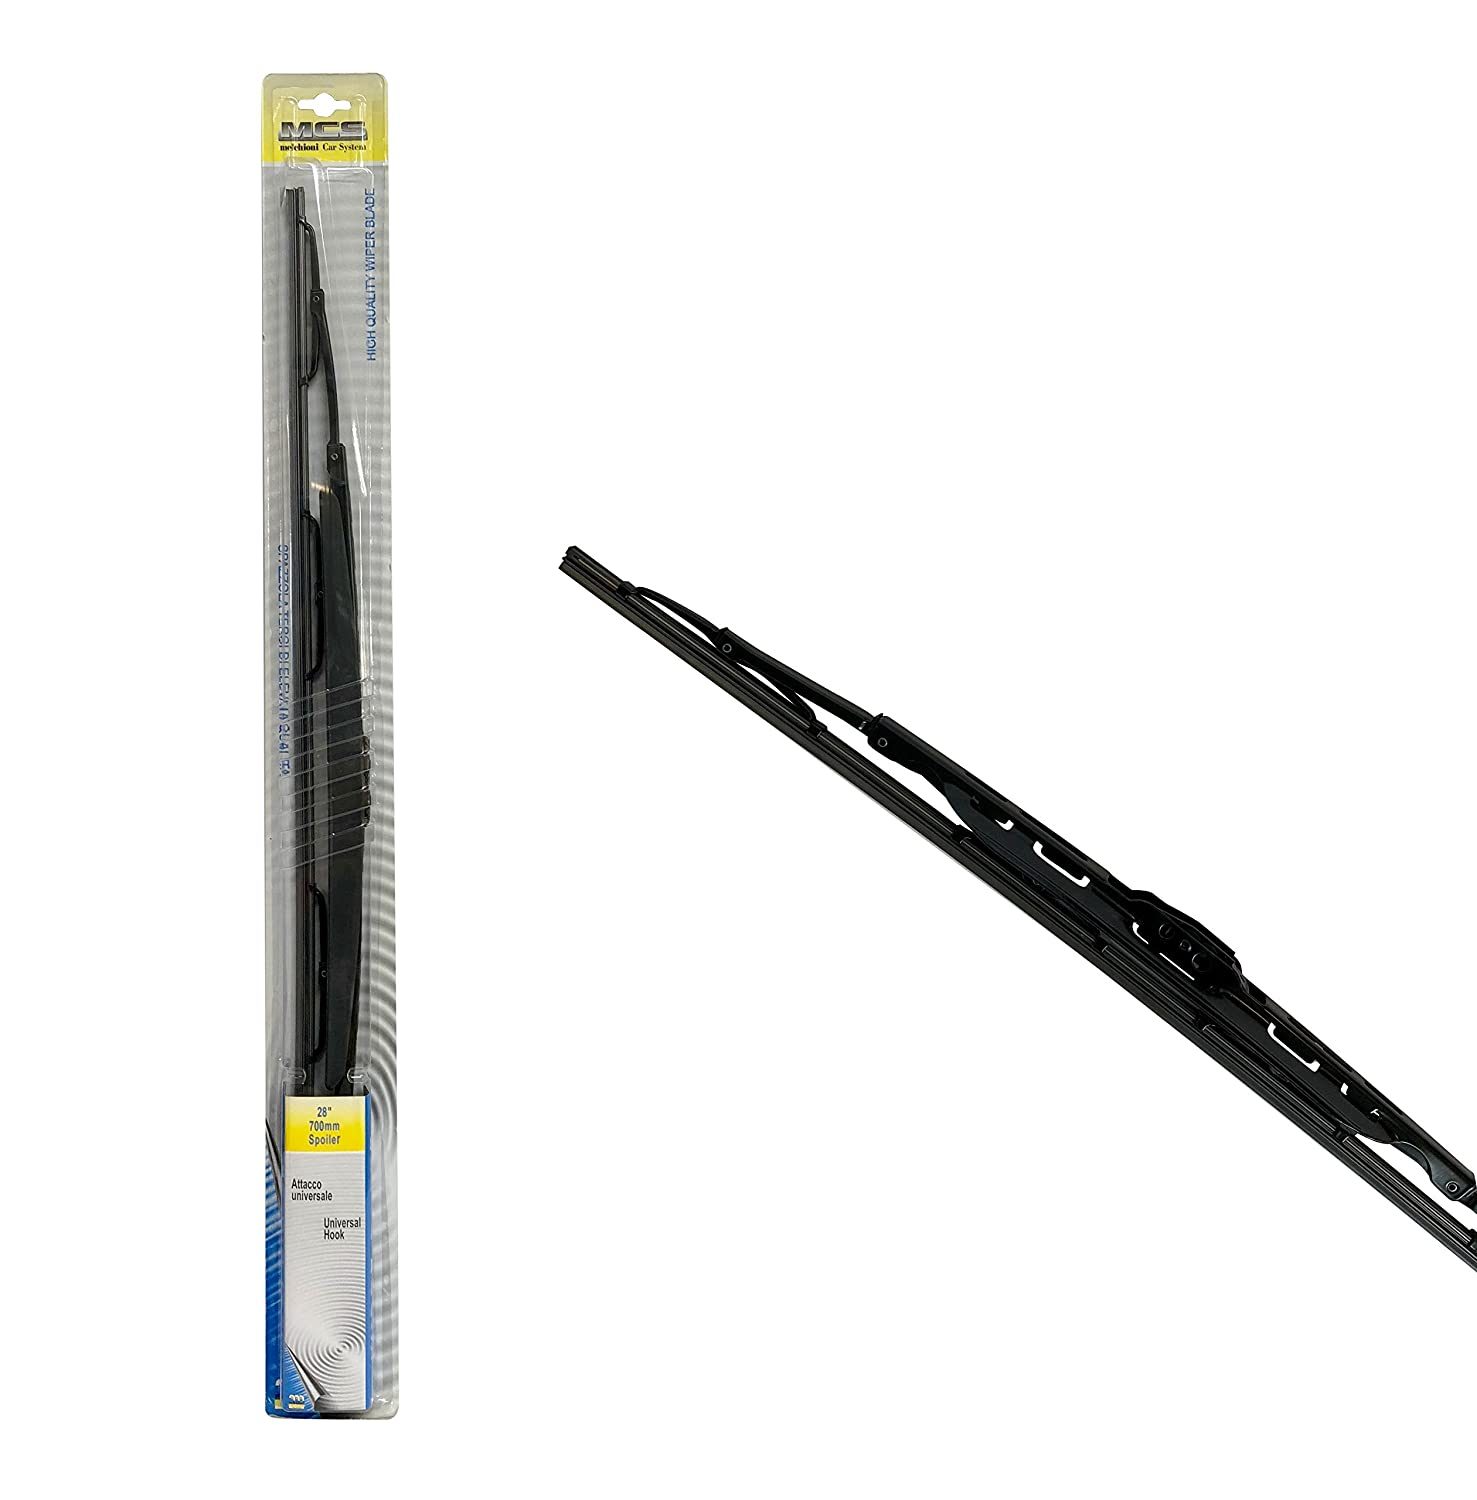 700/mm Melchioni 360003008/Wiper Blade with Spoiler \ 28